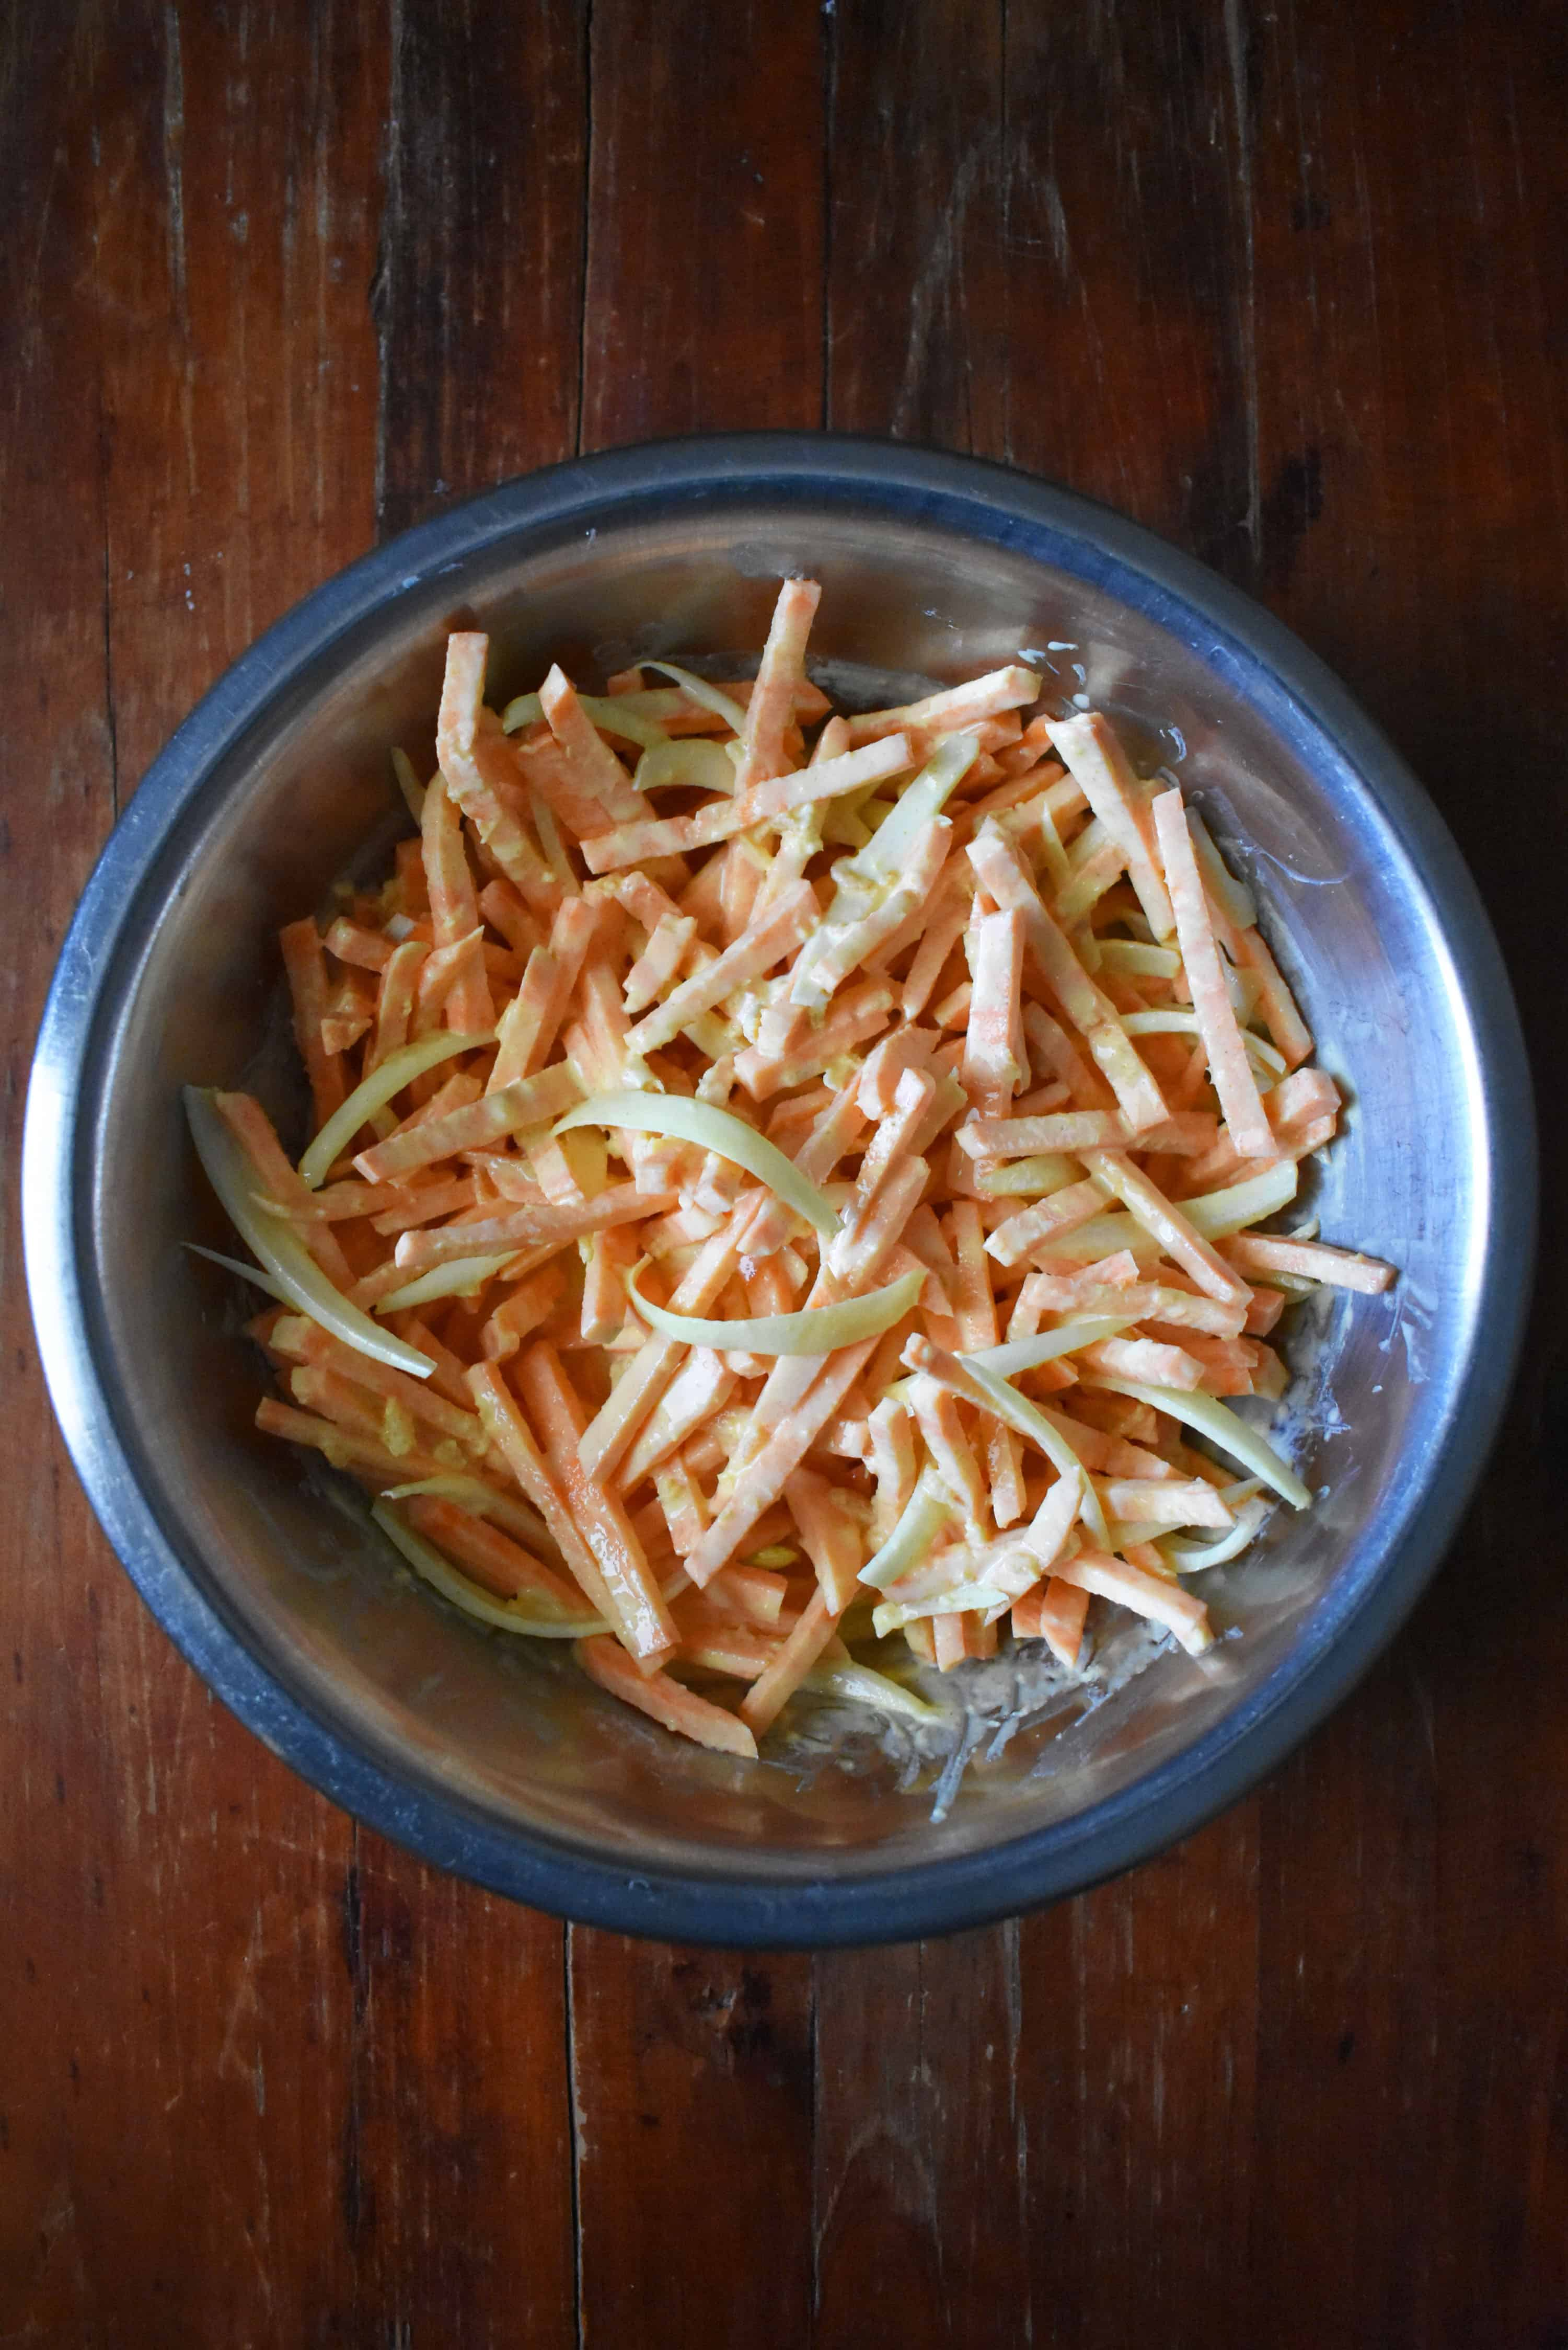 A large mixing bowl containing banh tom batter mixture, primarily made up of sweet potato and onion strips.